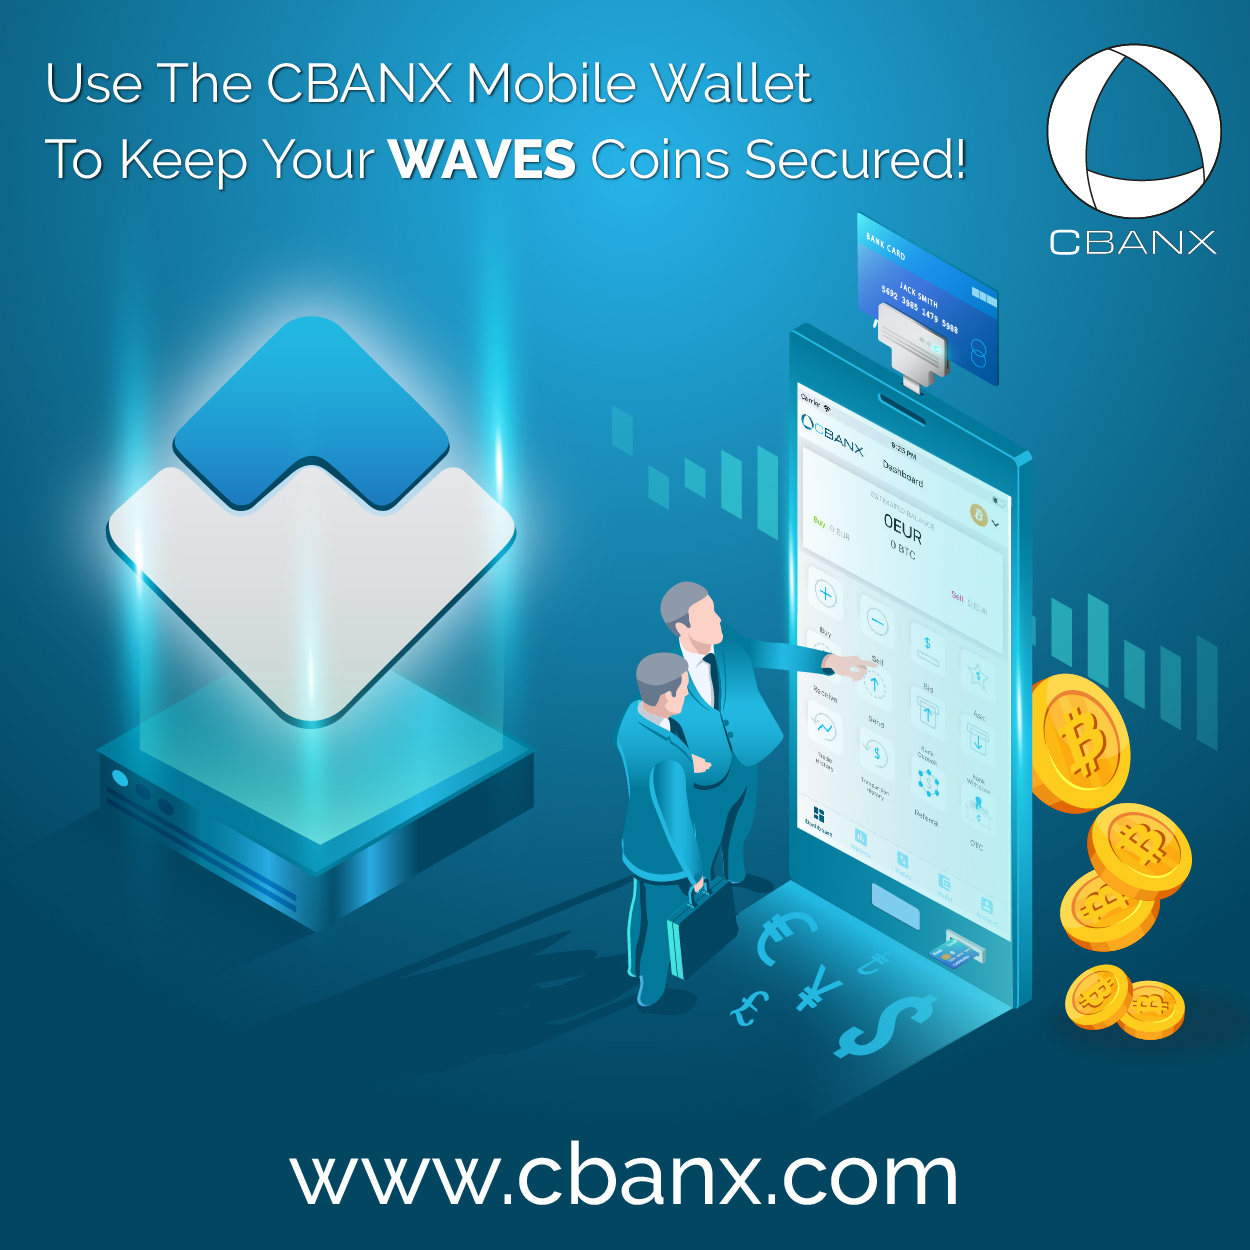 Use The CBANX Mobile Wallet To Keep Your WAVES Coins Secured!